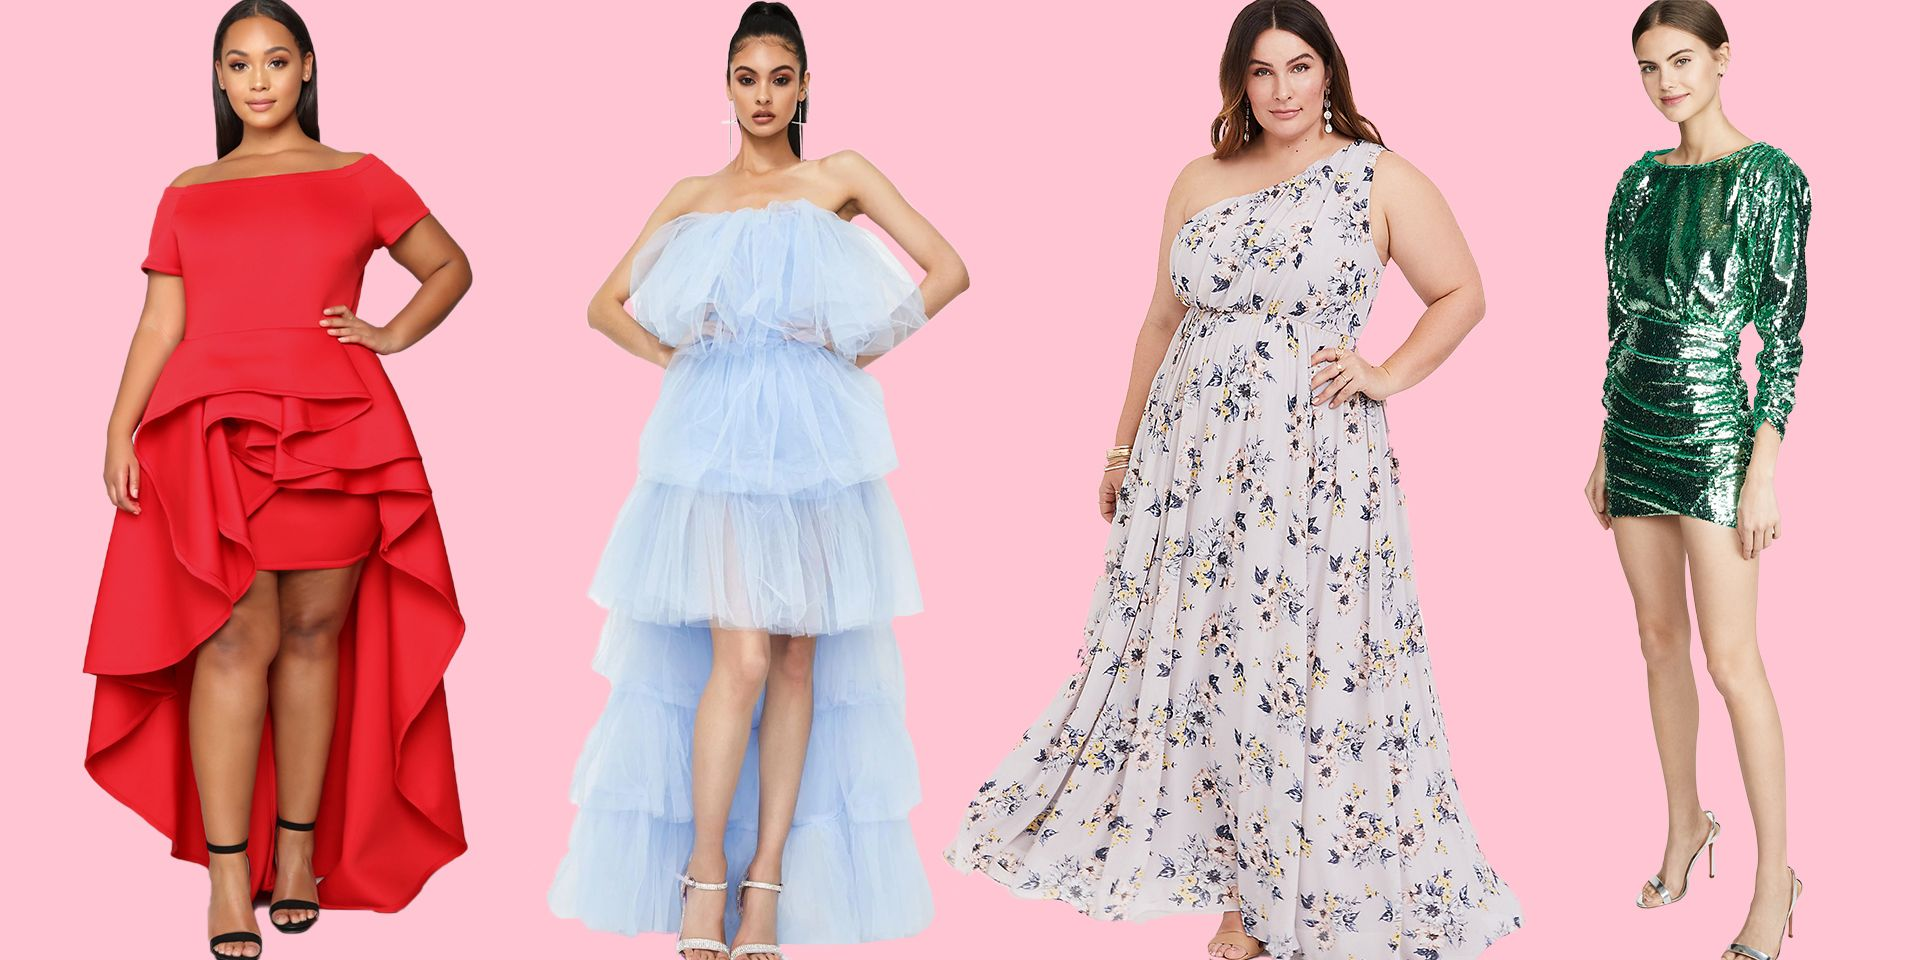 29 Best Cheap Prom Dresses 2020 , Where to Buy Affordable